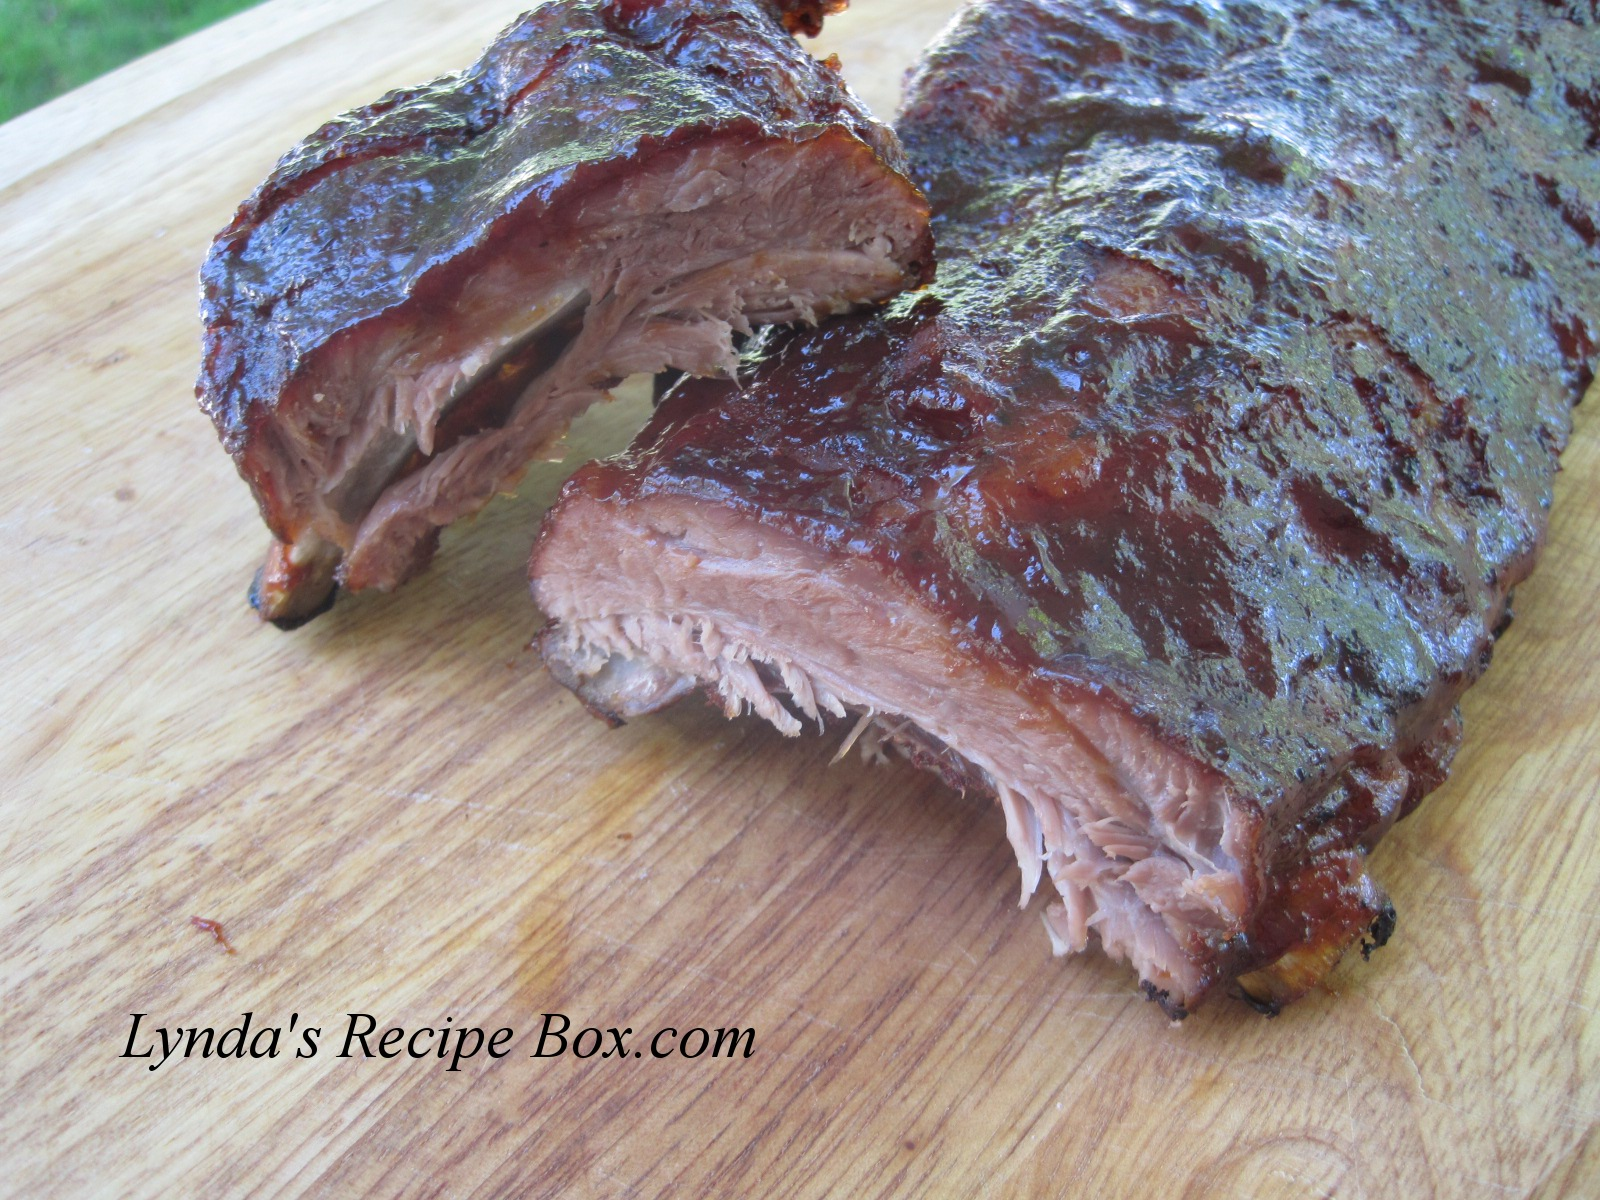 Lynda's Recipe Box: Oven-Baked Barbecued Baby Back Ribs